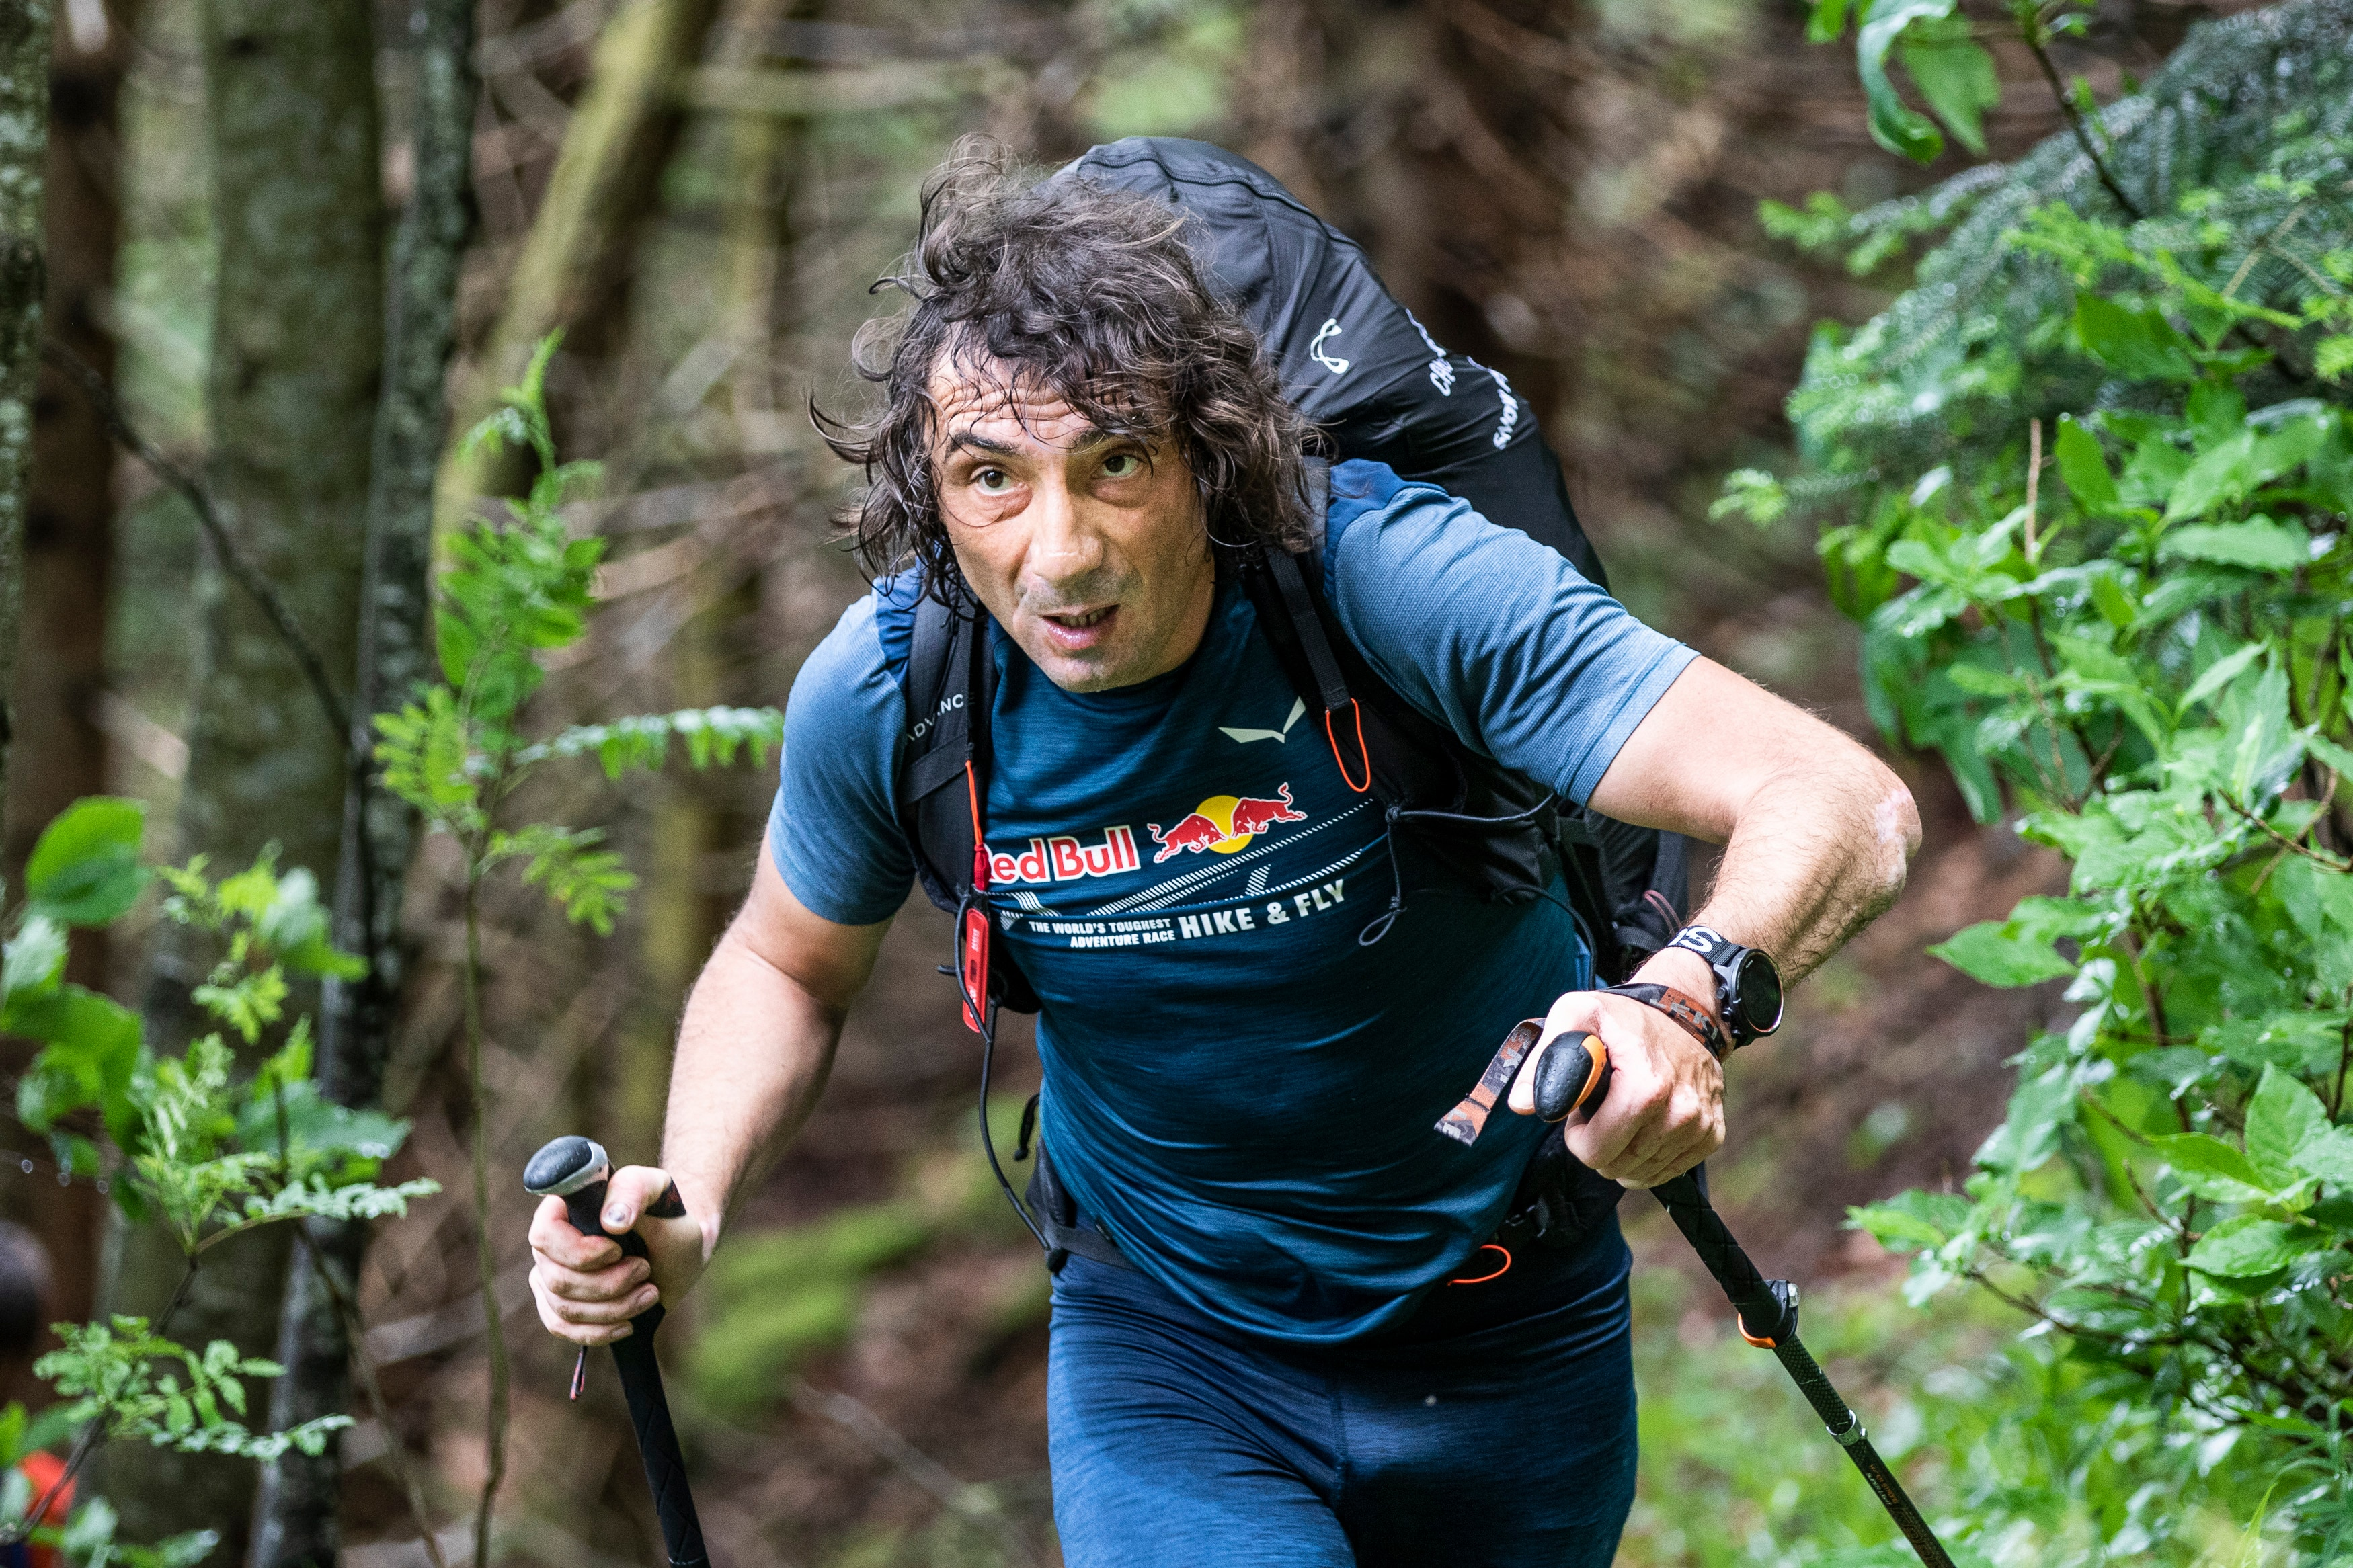 Toma Coconea (ROU) runs during the Red Bull X-Alps in Salzburg, Austria on June 16, 2019